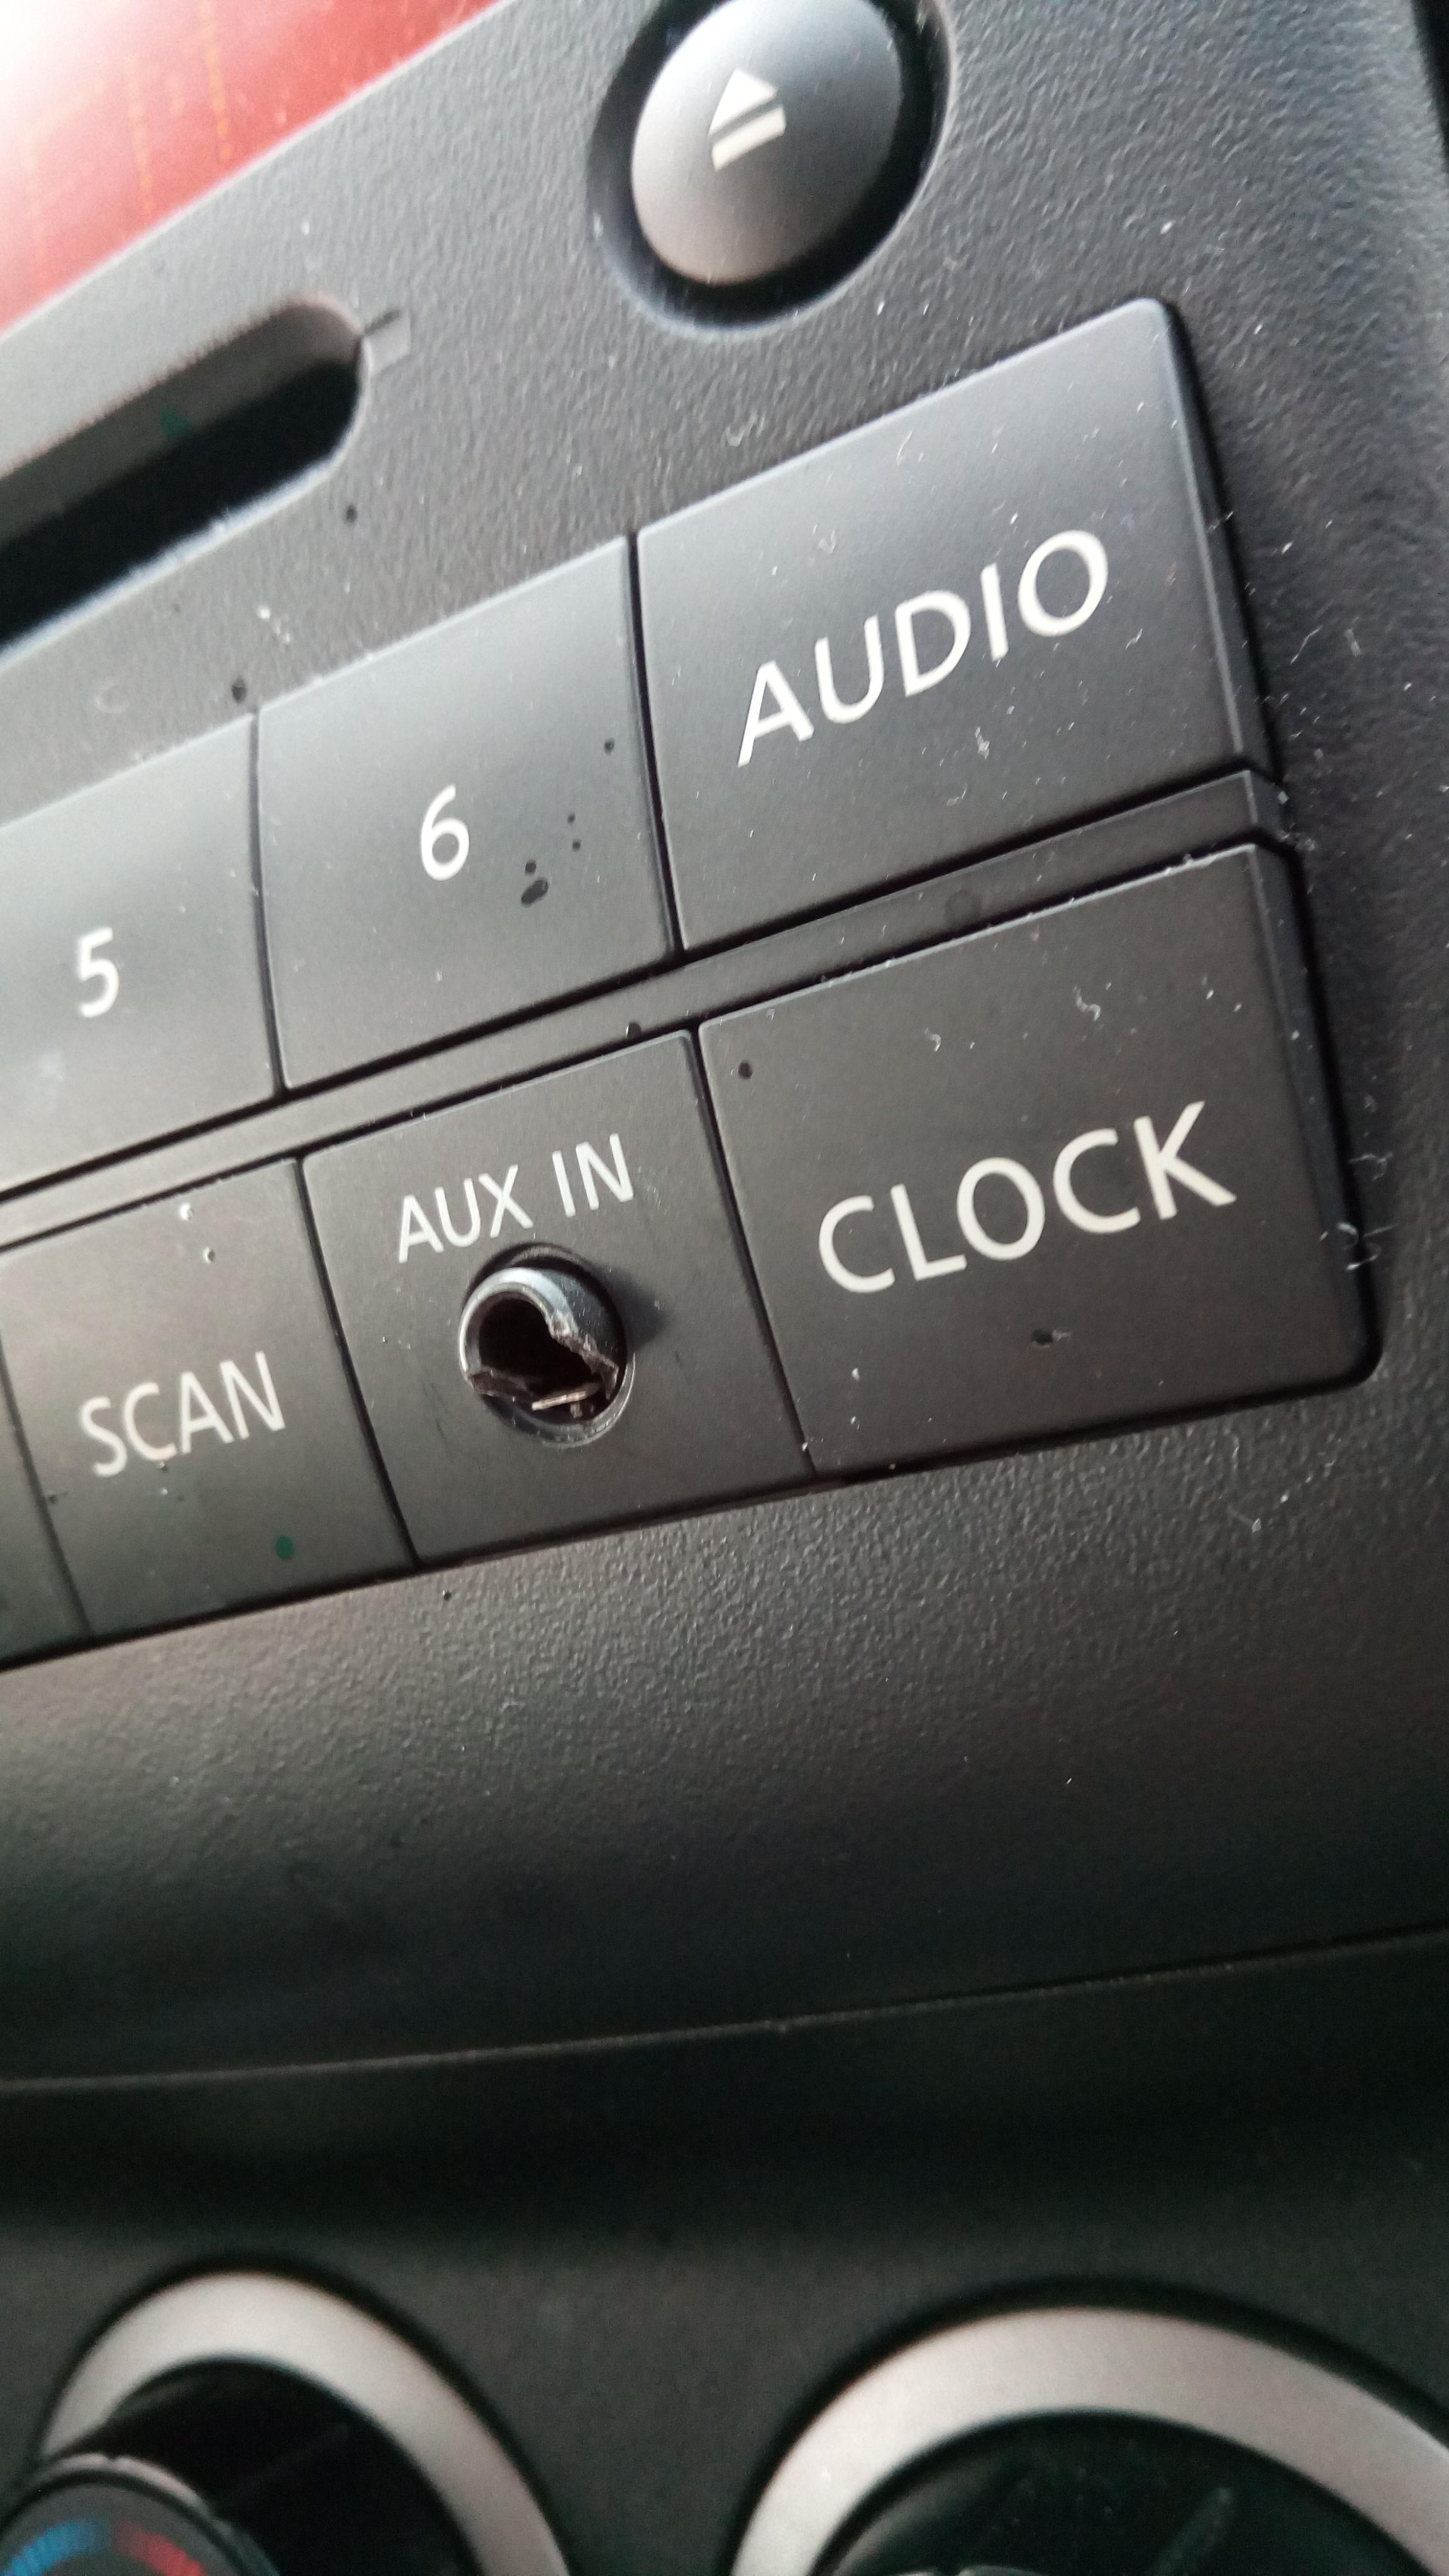 How To Fix Loose Aux Port In Car : loose, Minor, Issue, Plastic, Outline, Broke, Loose, Doesn't, Wondering, Theres, Simple, Besides